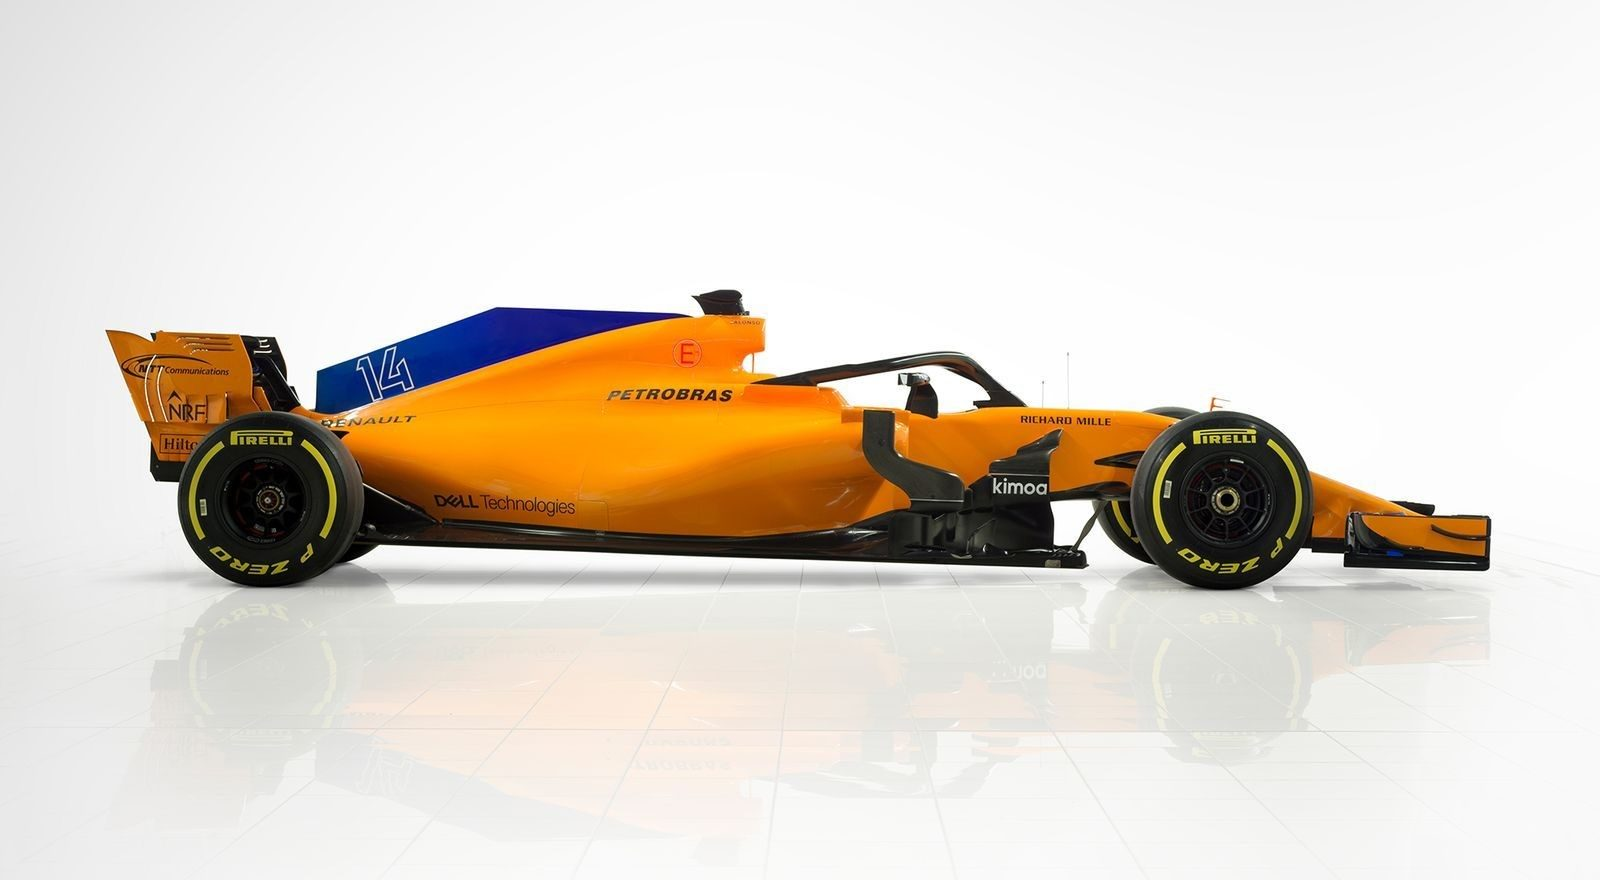 https://www.autoblog.nl/gallery/0_Racing/McLaren_F1_MCL33_2018/MCL33_Website2.jpg